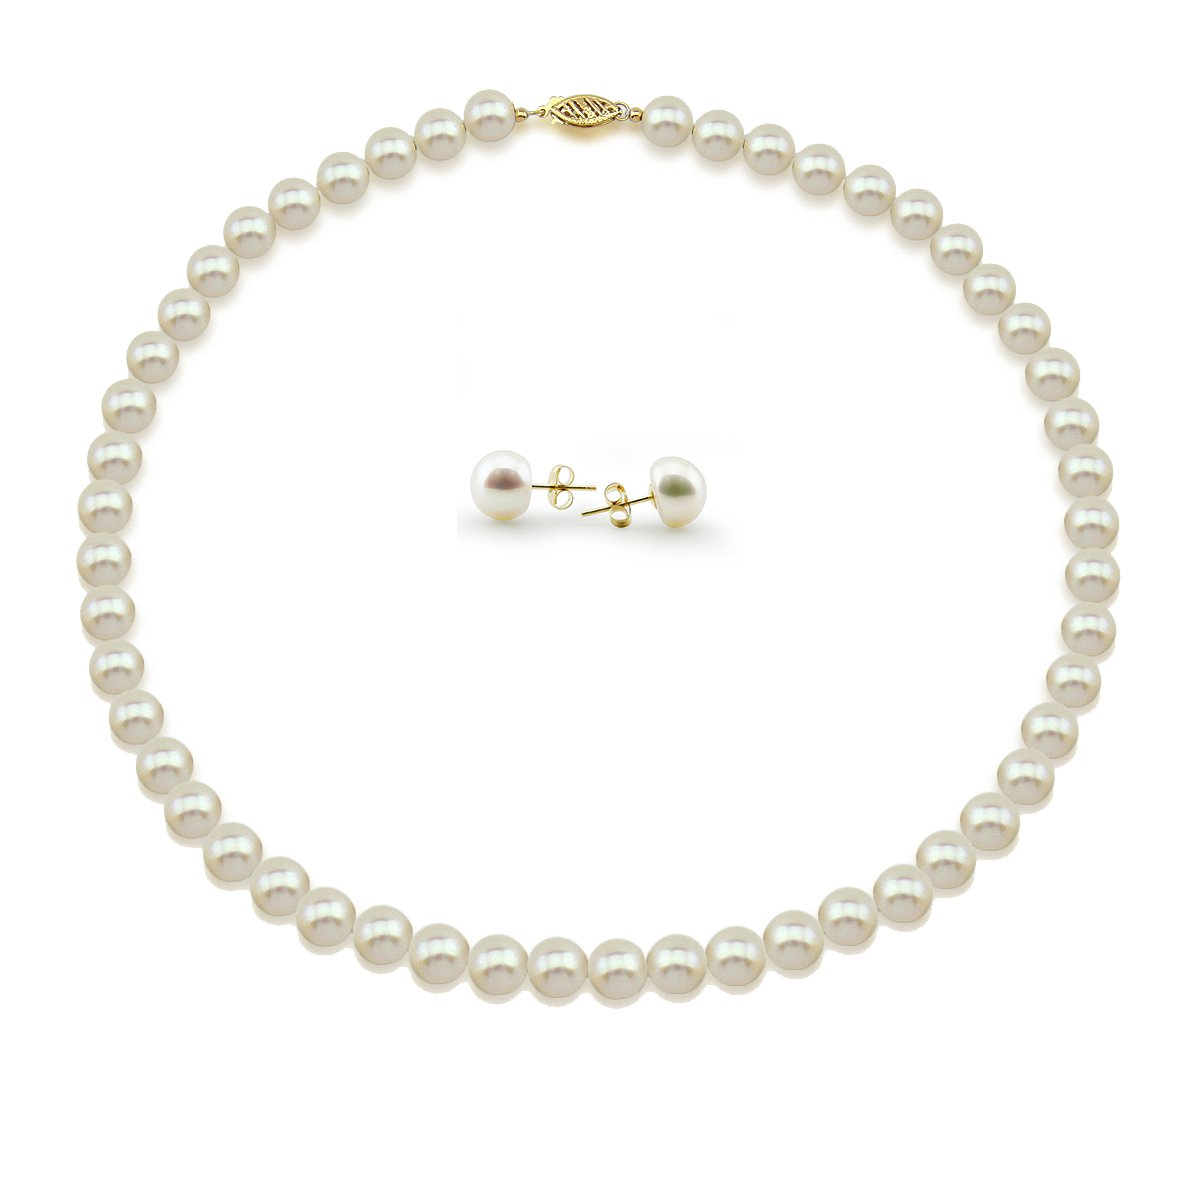 """14K Yellow Gold 7.5-8.0mm High Luster White Freshwater Cultured Pearl Necklace 18"""", and Earrings Set"""